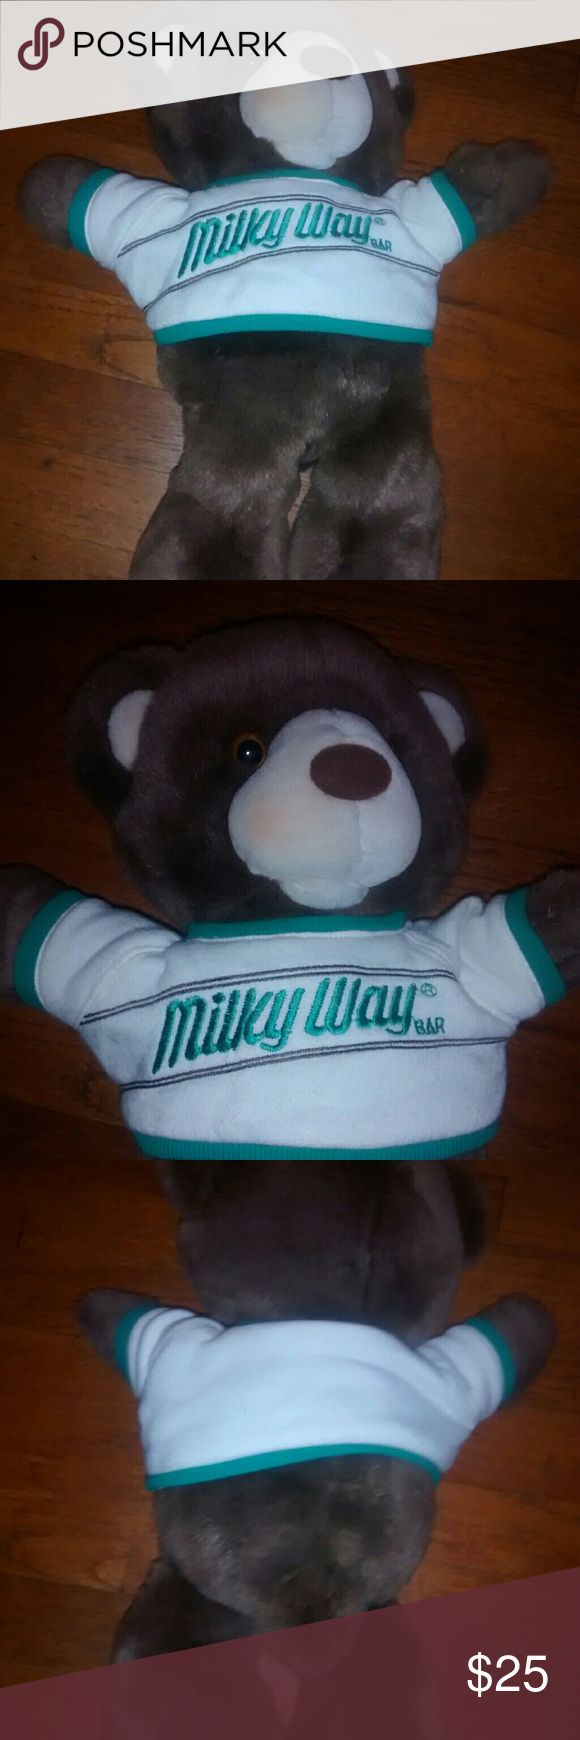 Vintage 1987 Milky Way Teddy Bear Beautiful Condition Well kept No tags Mars Company milky way Other